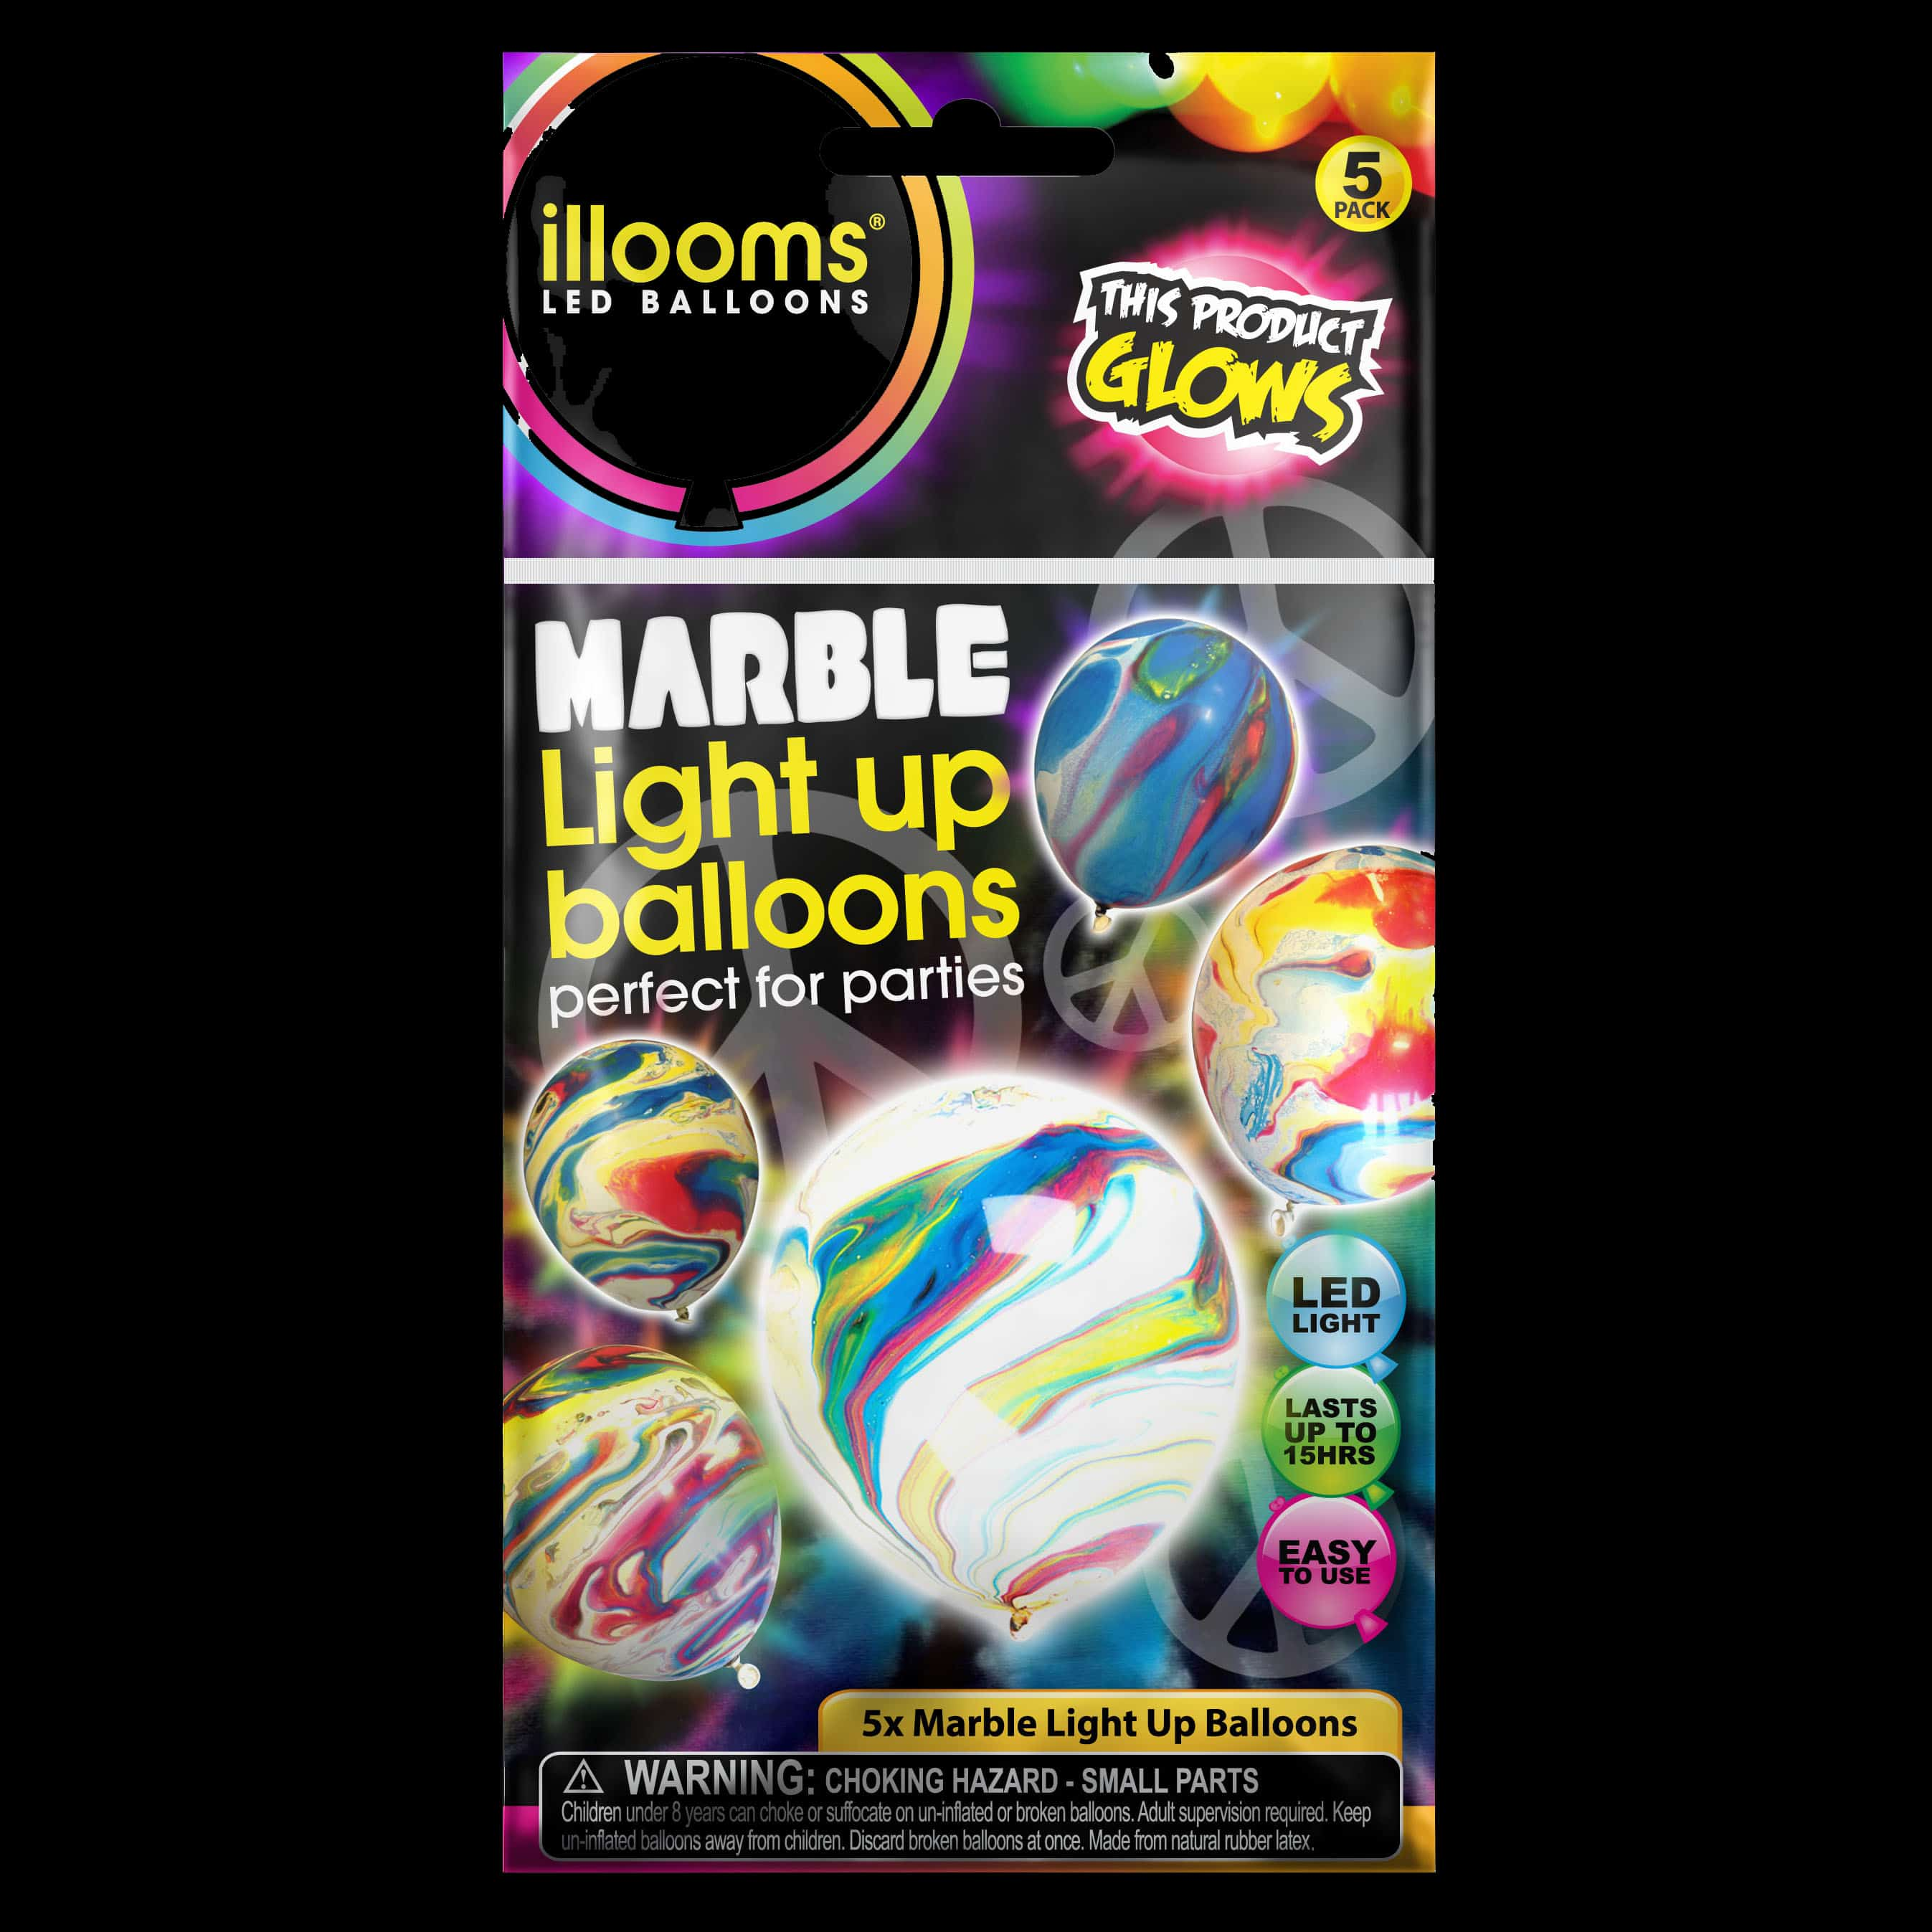 Pack of 5 iLLooms LED balloons with marble effect pattern